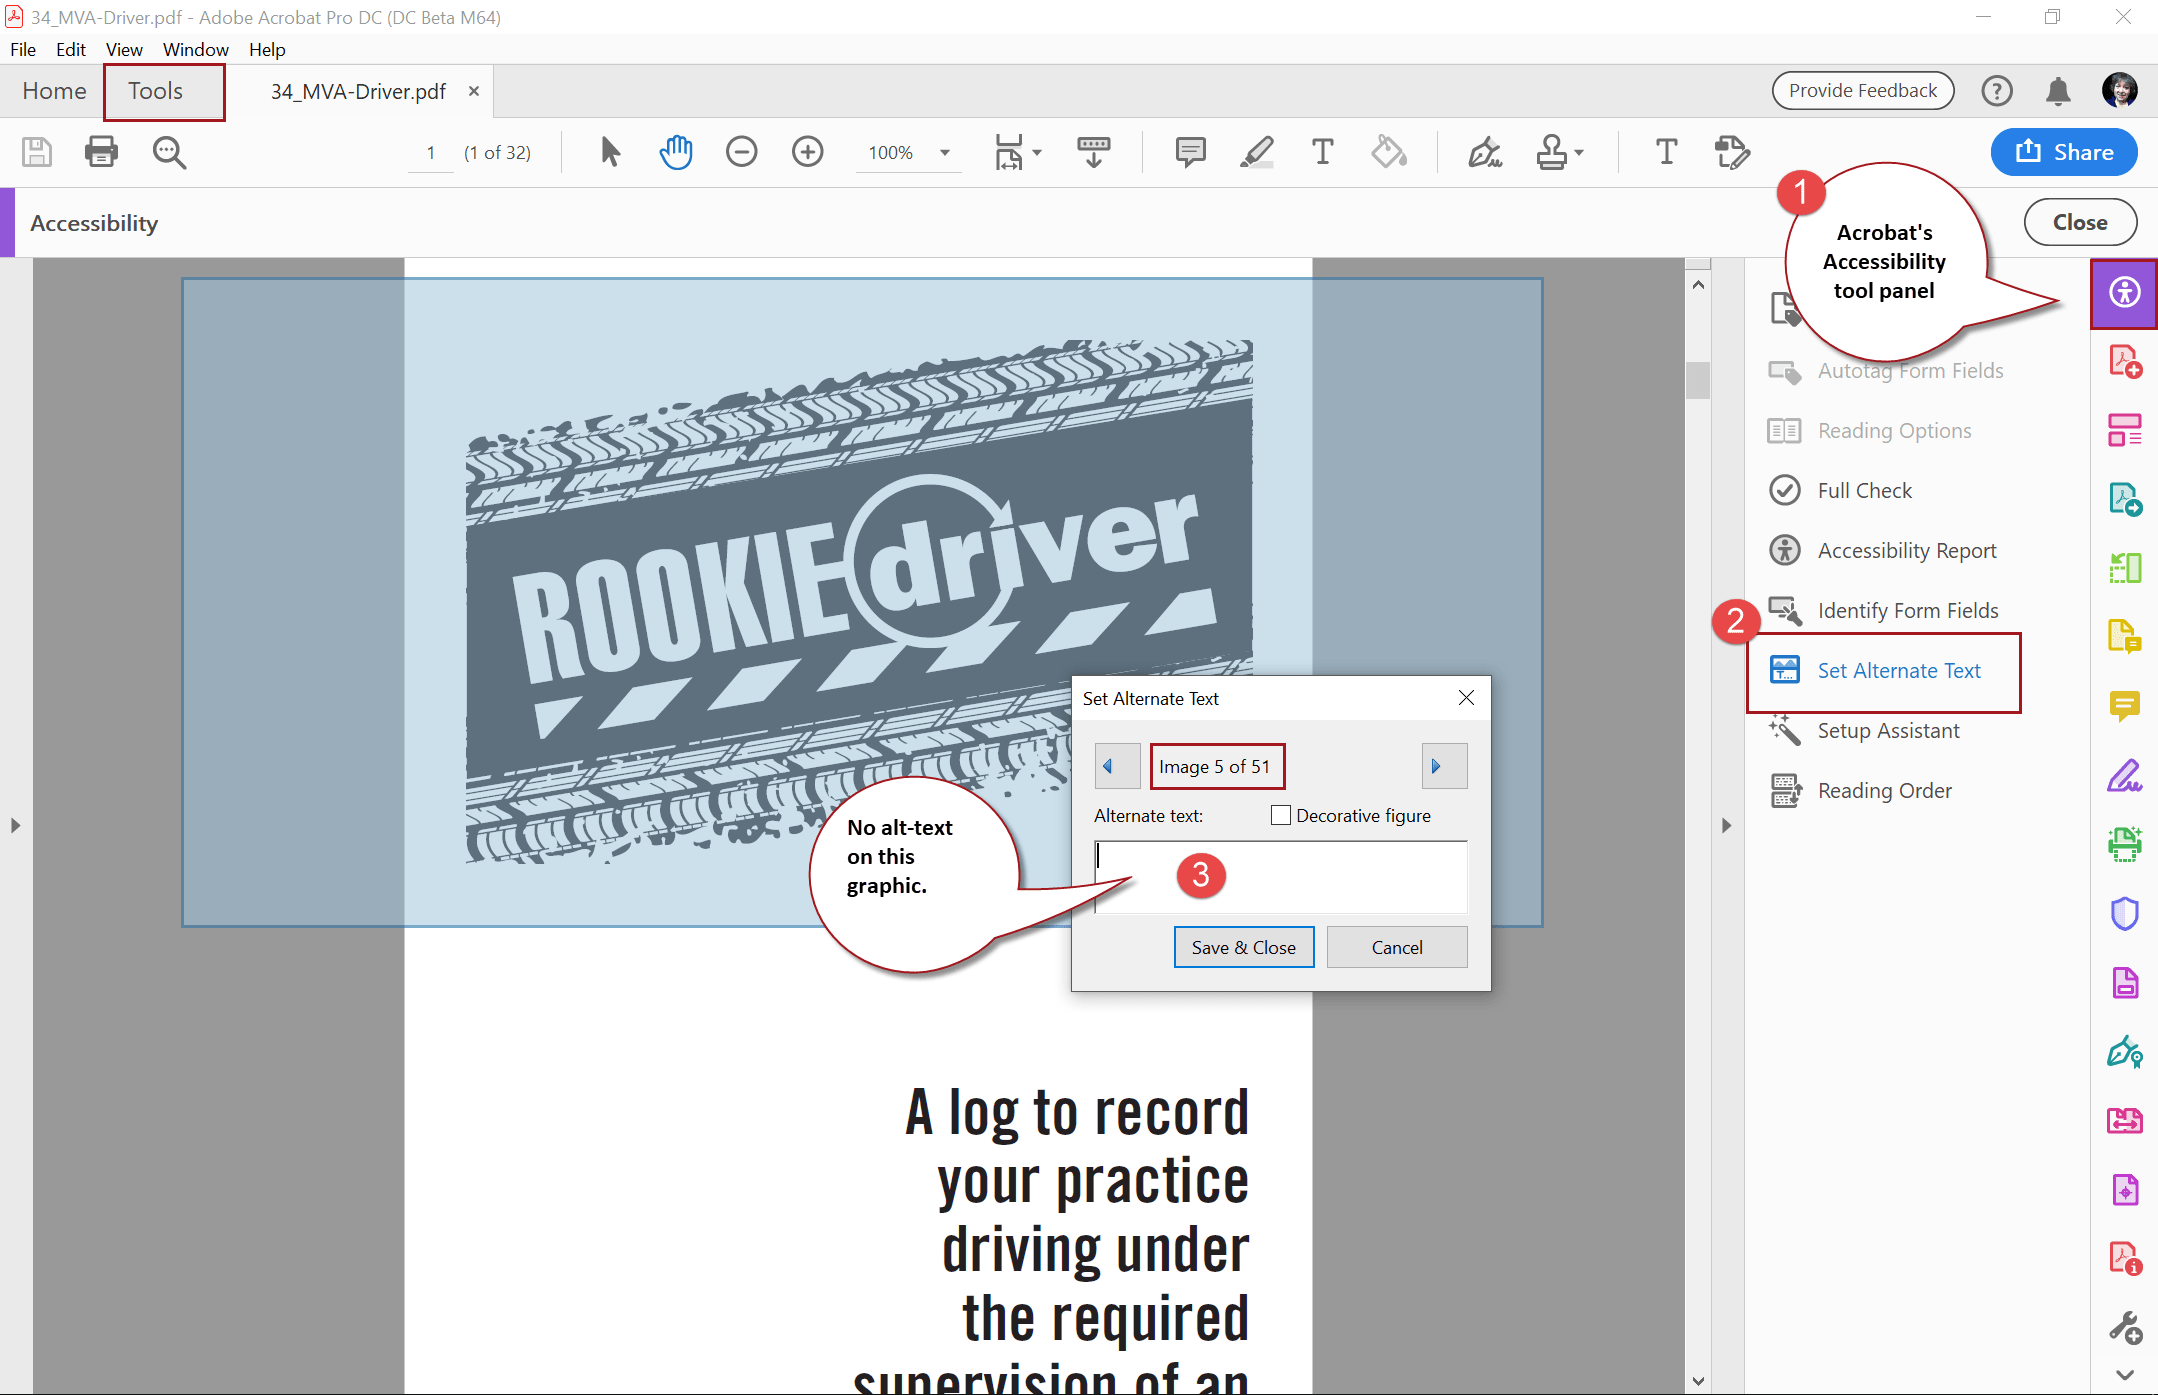 Add alt text to images in PDF file